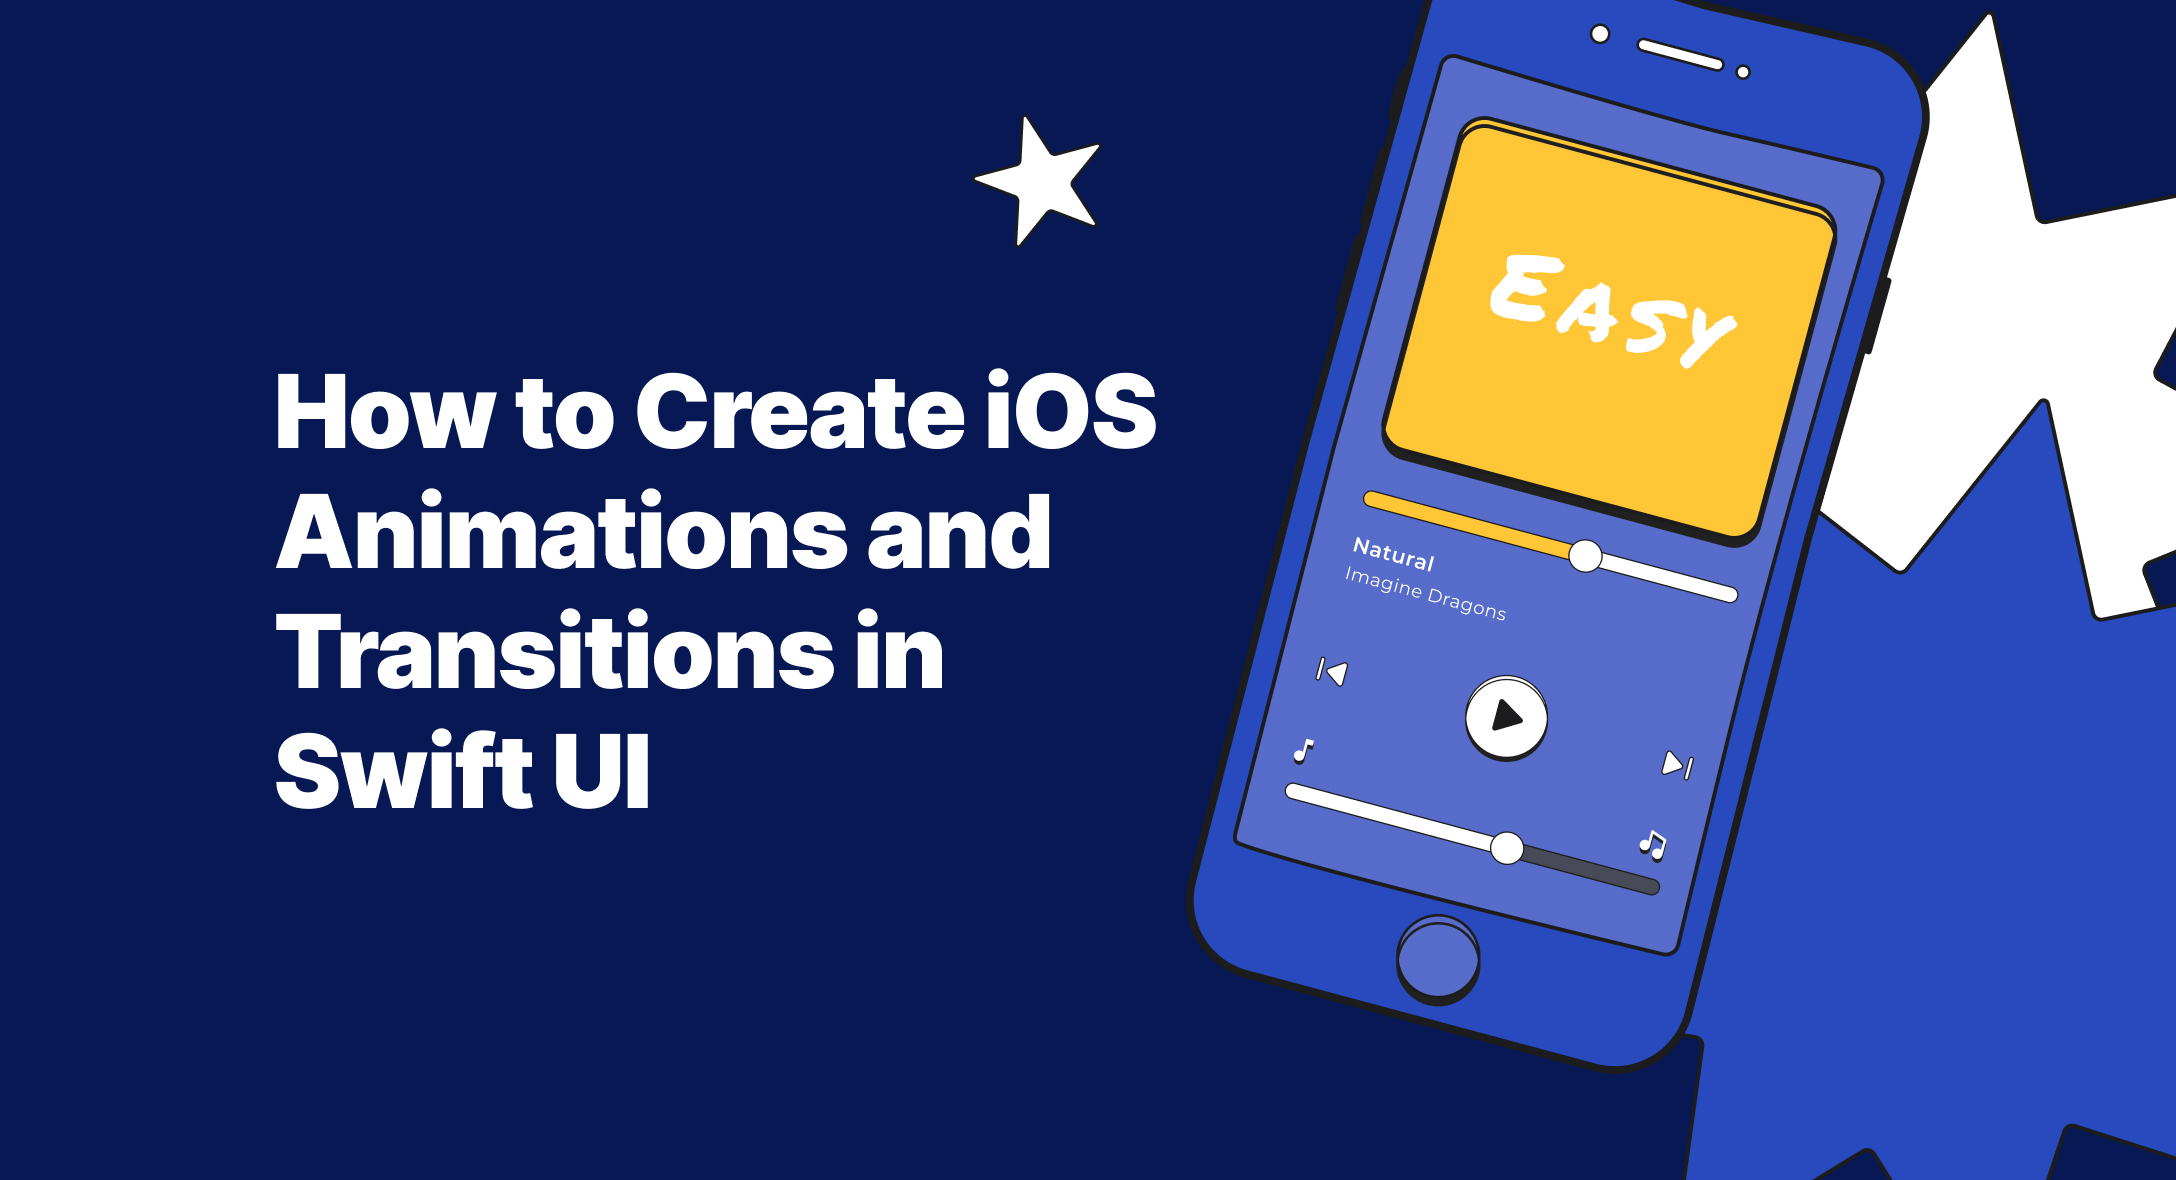 How to Create iOS Animations and Transitions in Swift UI